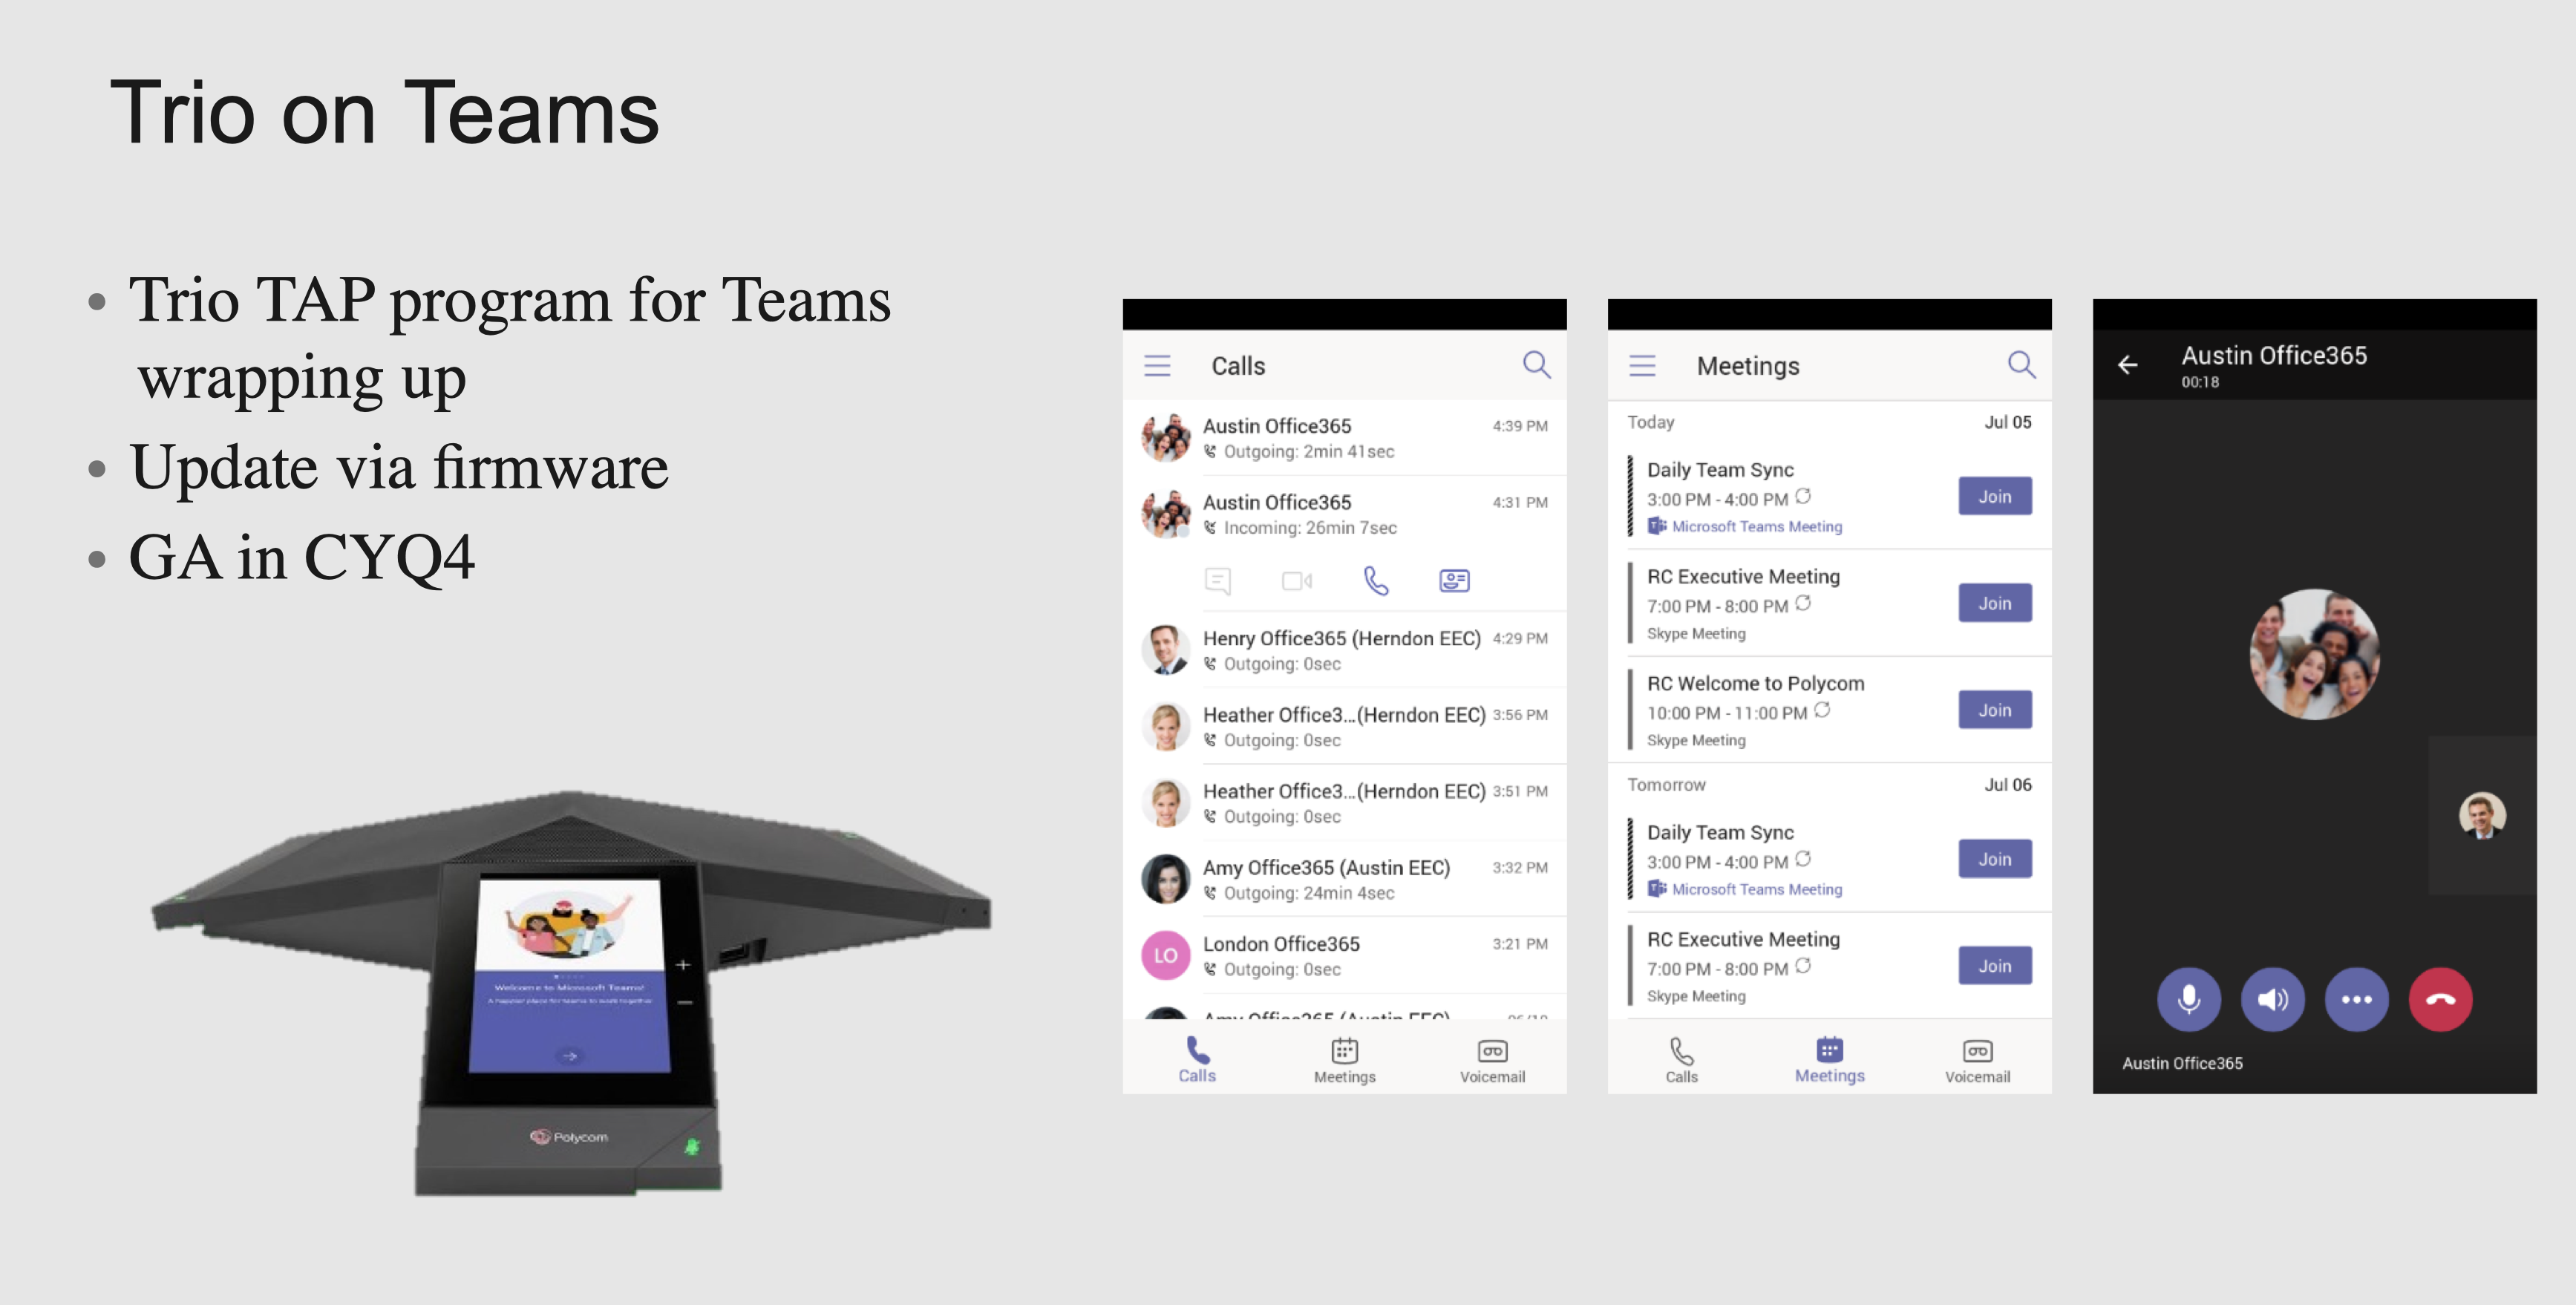 Microsoft Teams is now a complete meeting and calling solution